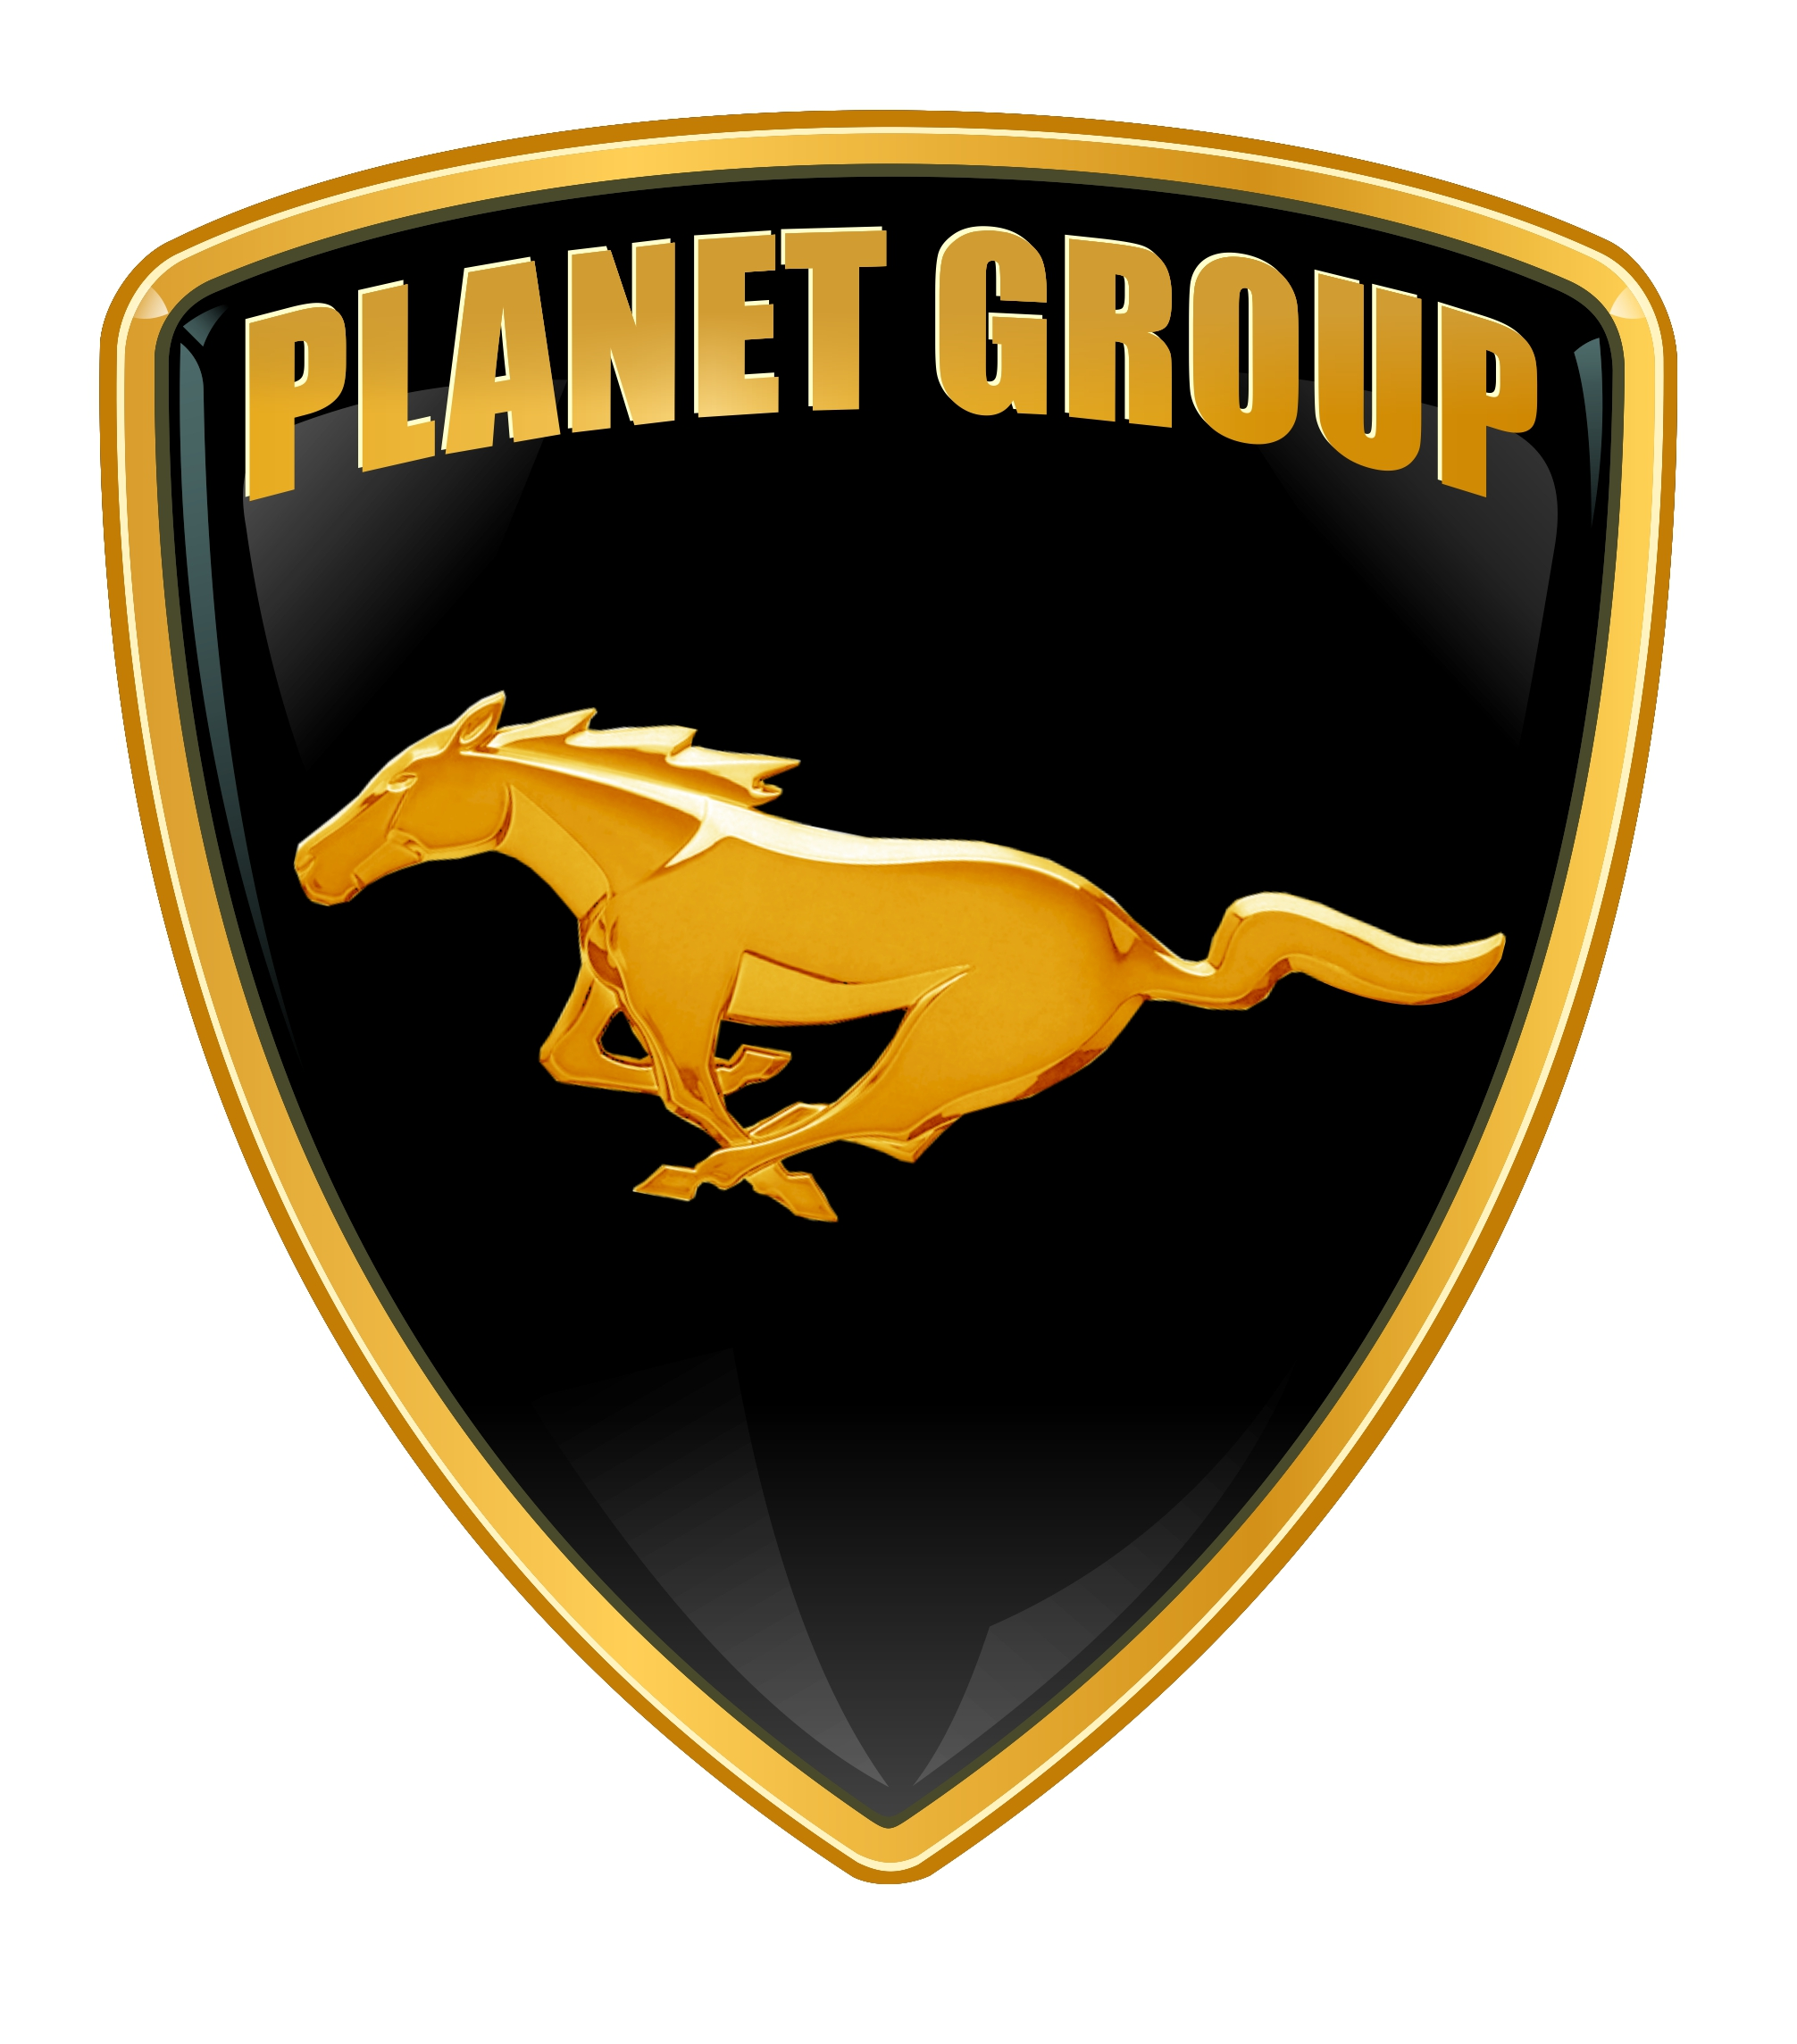 PLANET GROUP